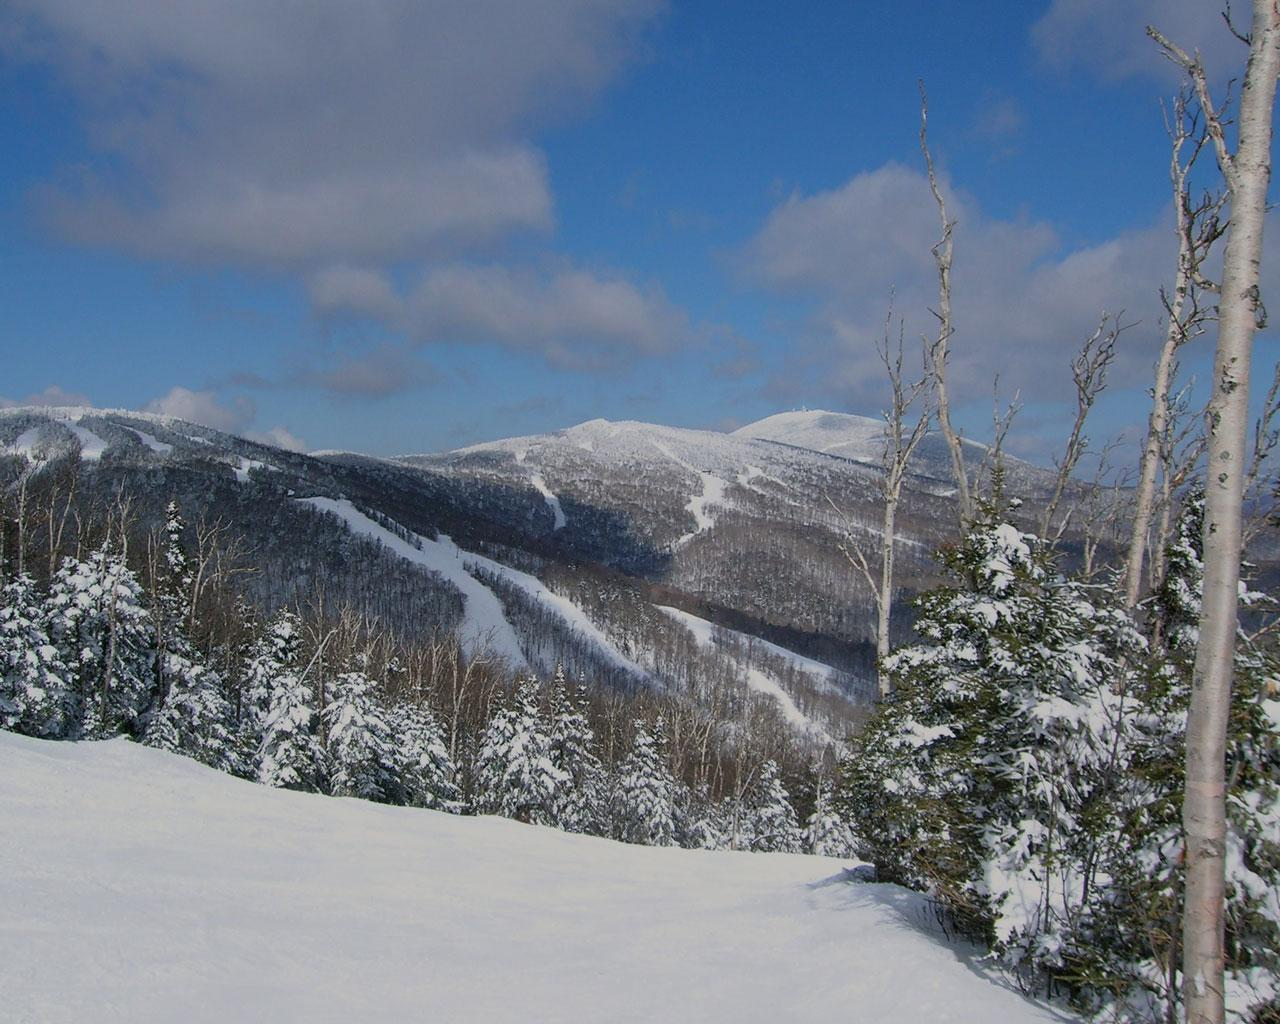 Killington, Vermont - View from Bittersweet trail to Snowdon Mtn Wallpaper #3 1280 x 1024